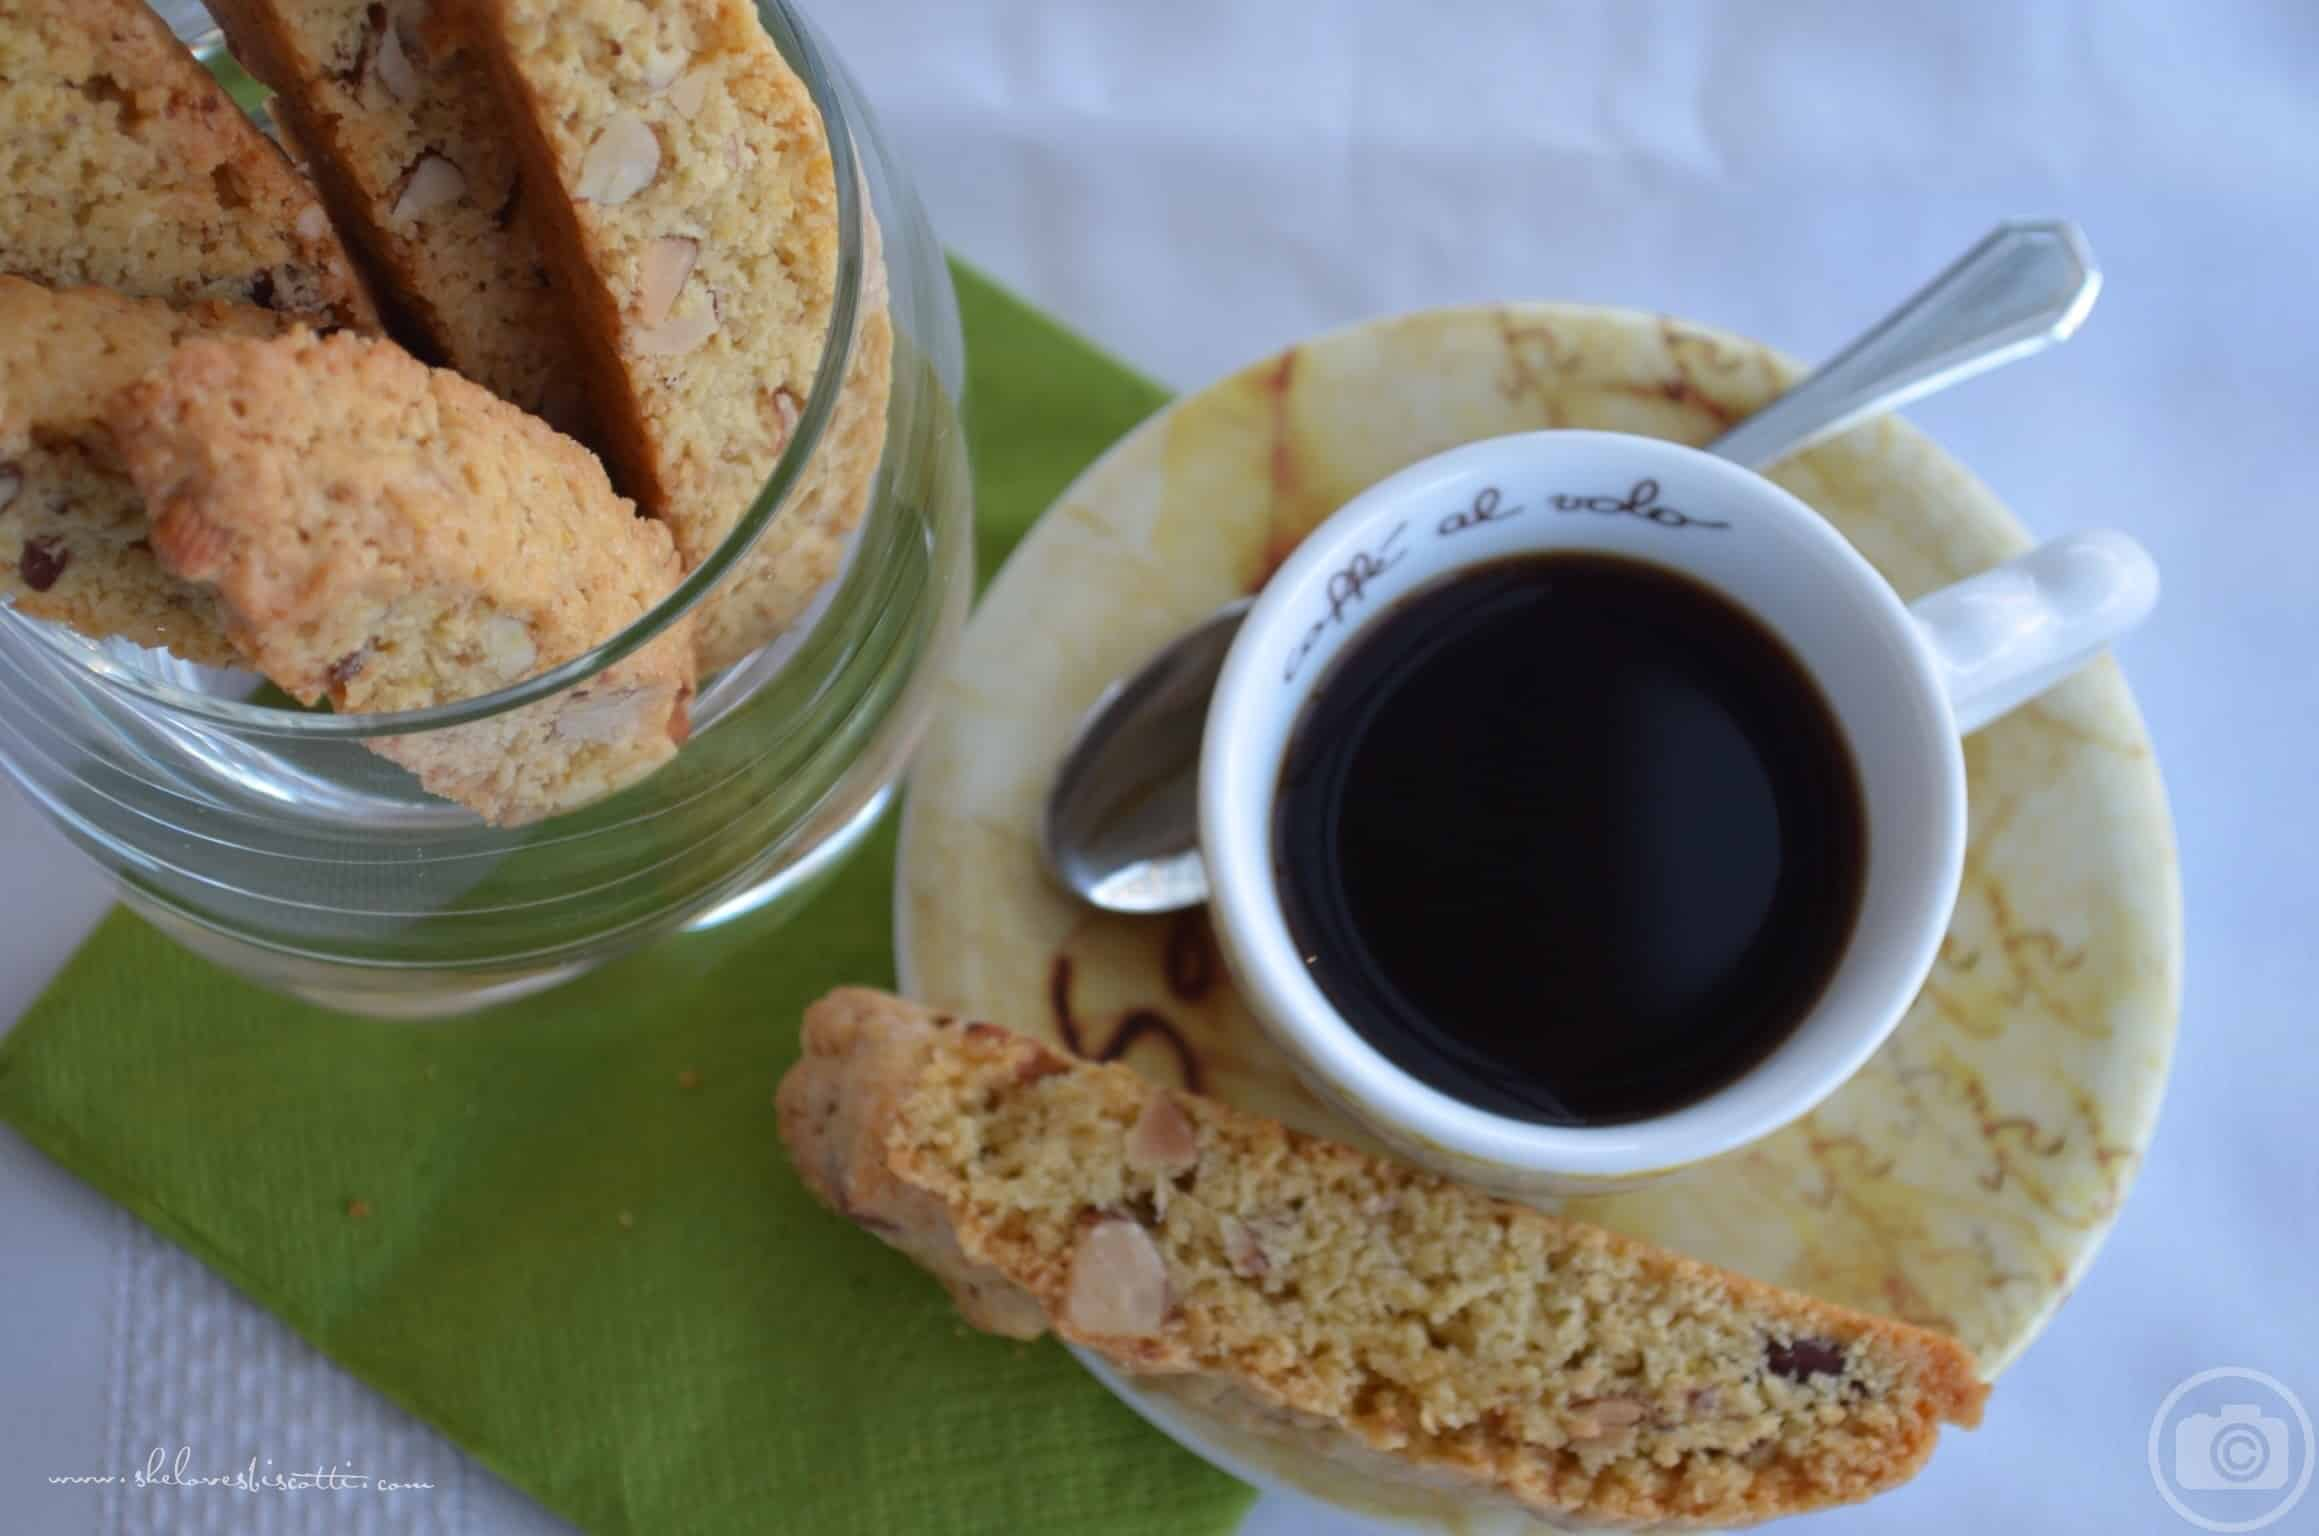 An overhead view of an espresso cup and almond biscotti.